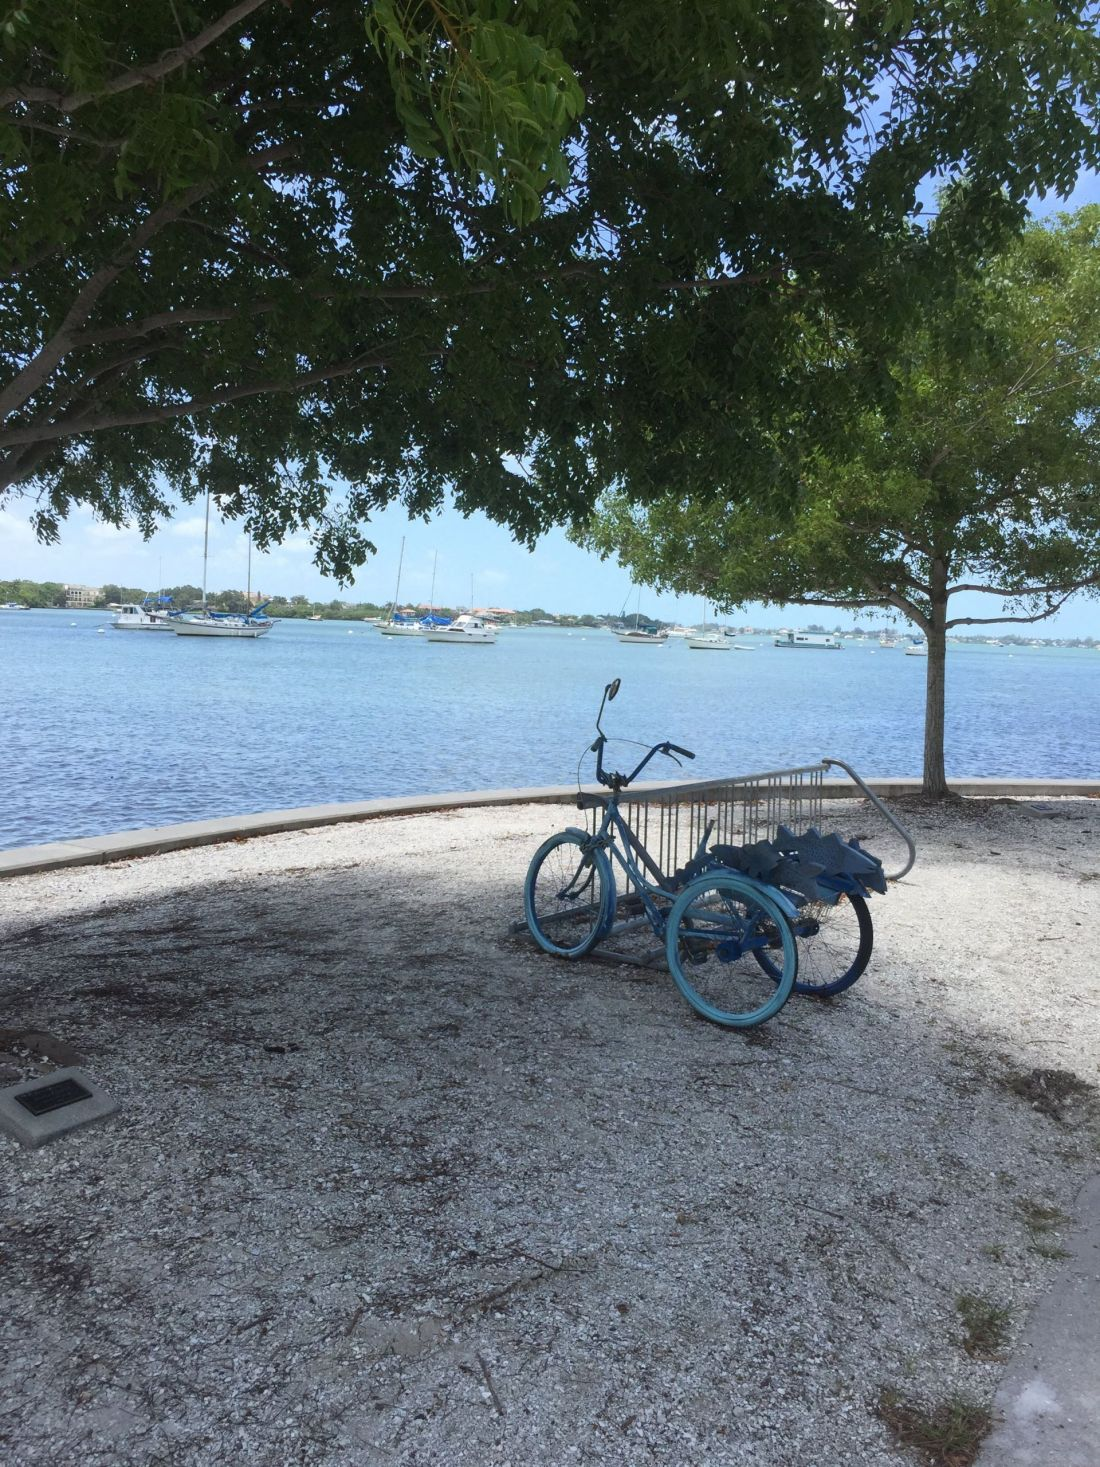 Bicycle on Sarasota Bay